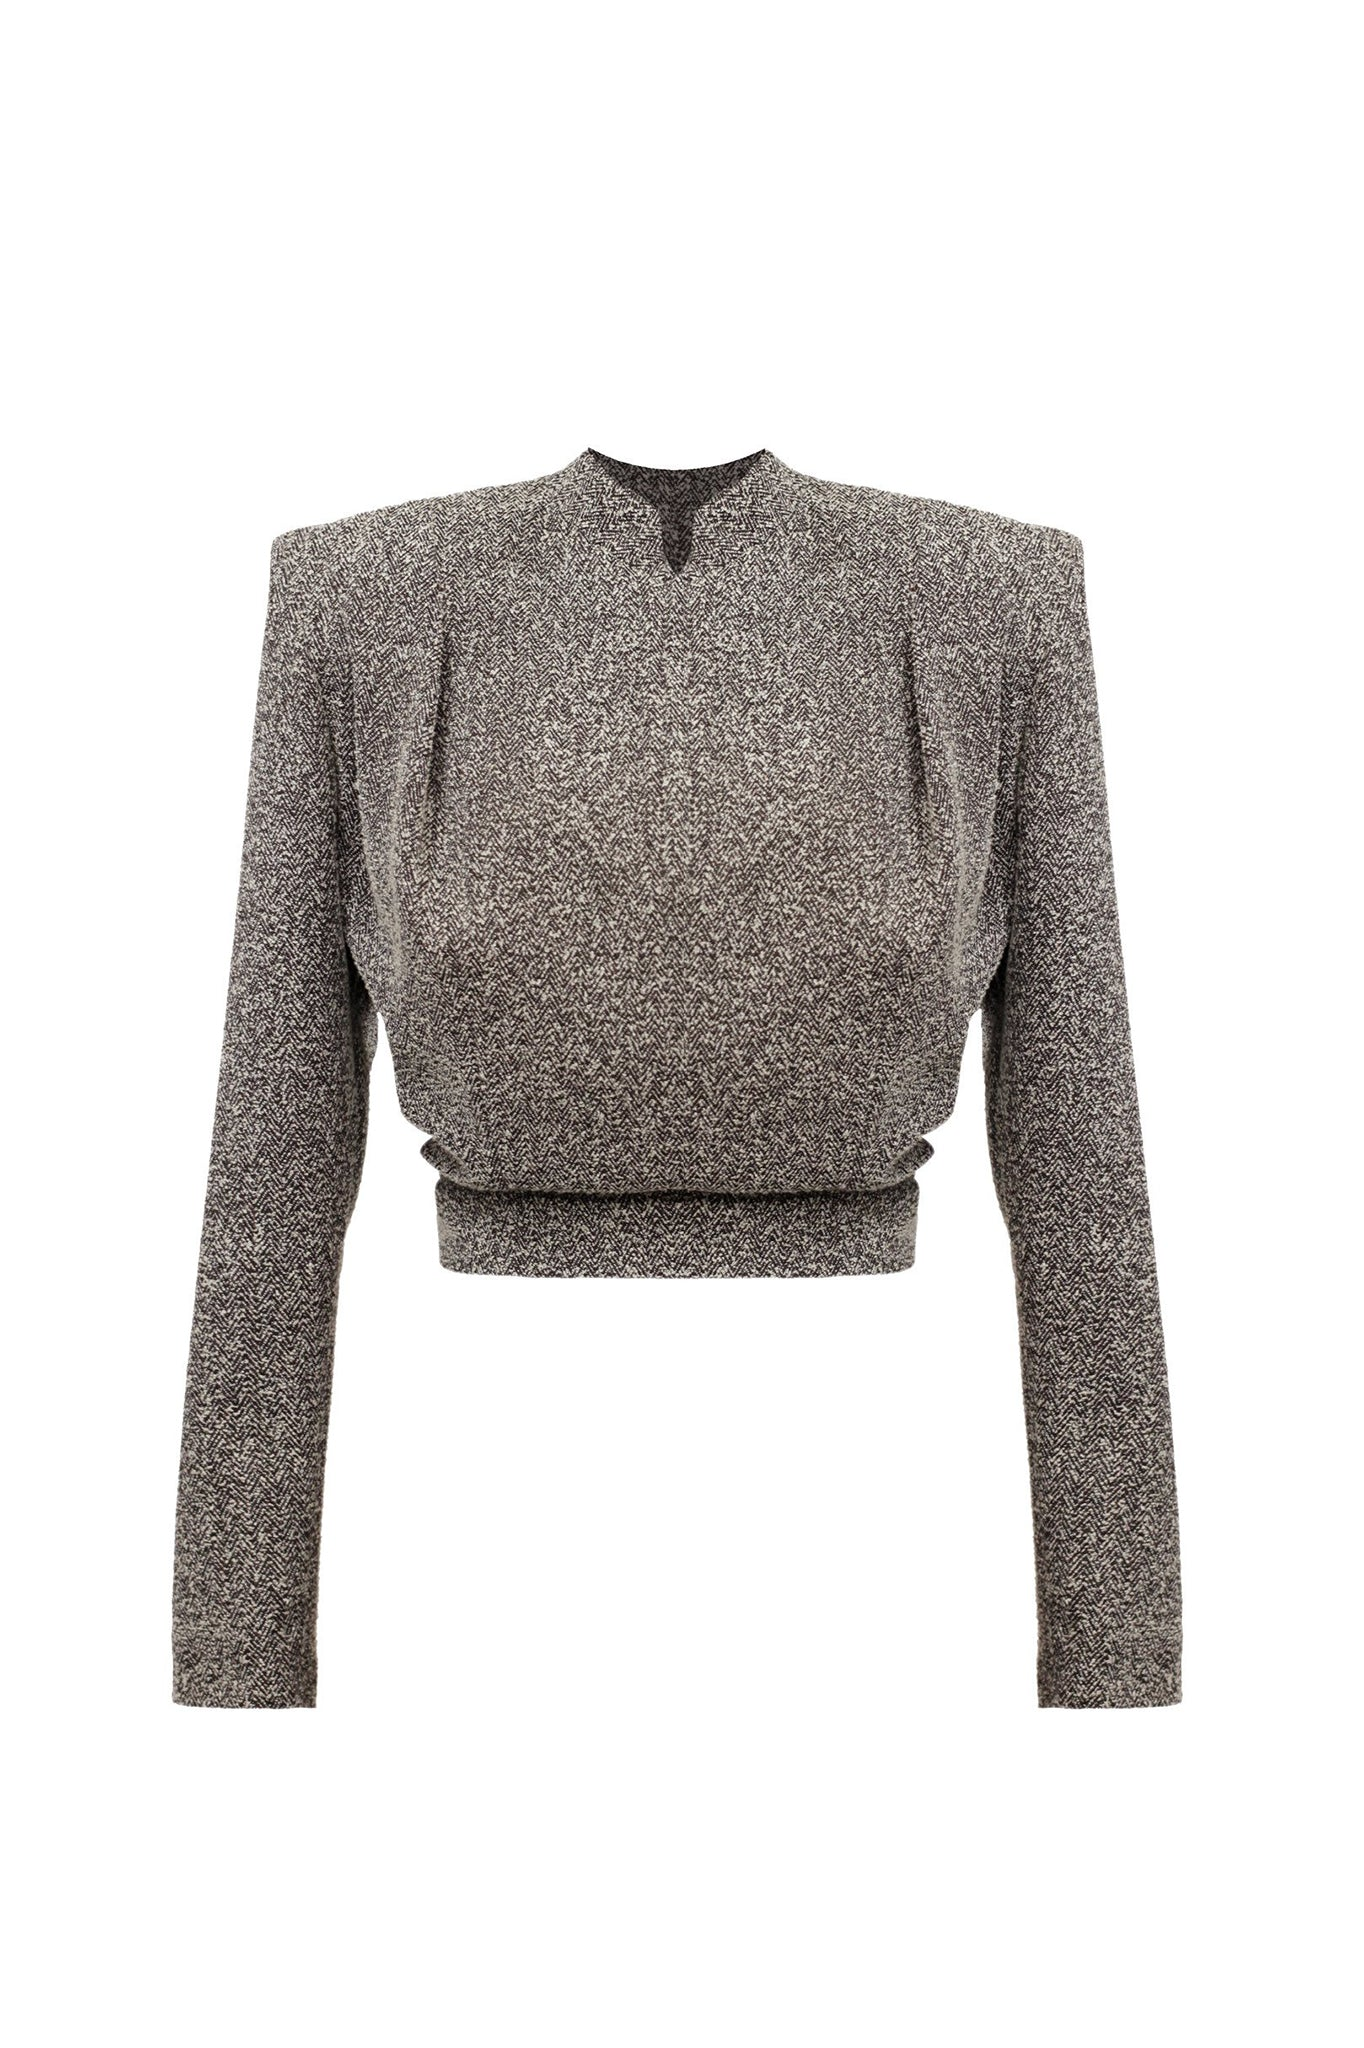 "Textured Wool ""Blade"" Top"